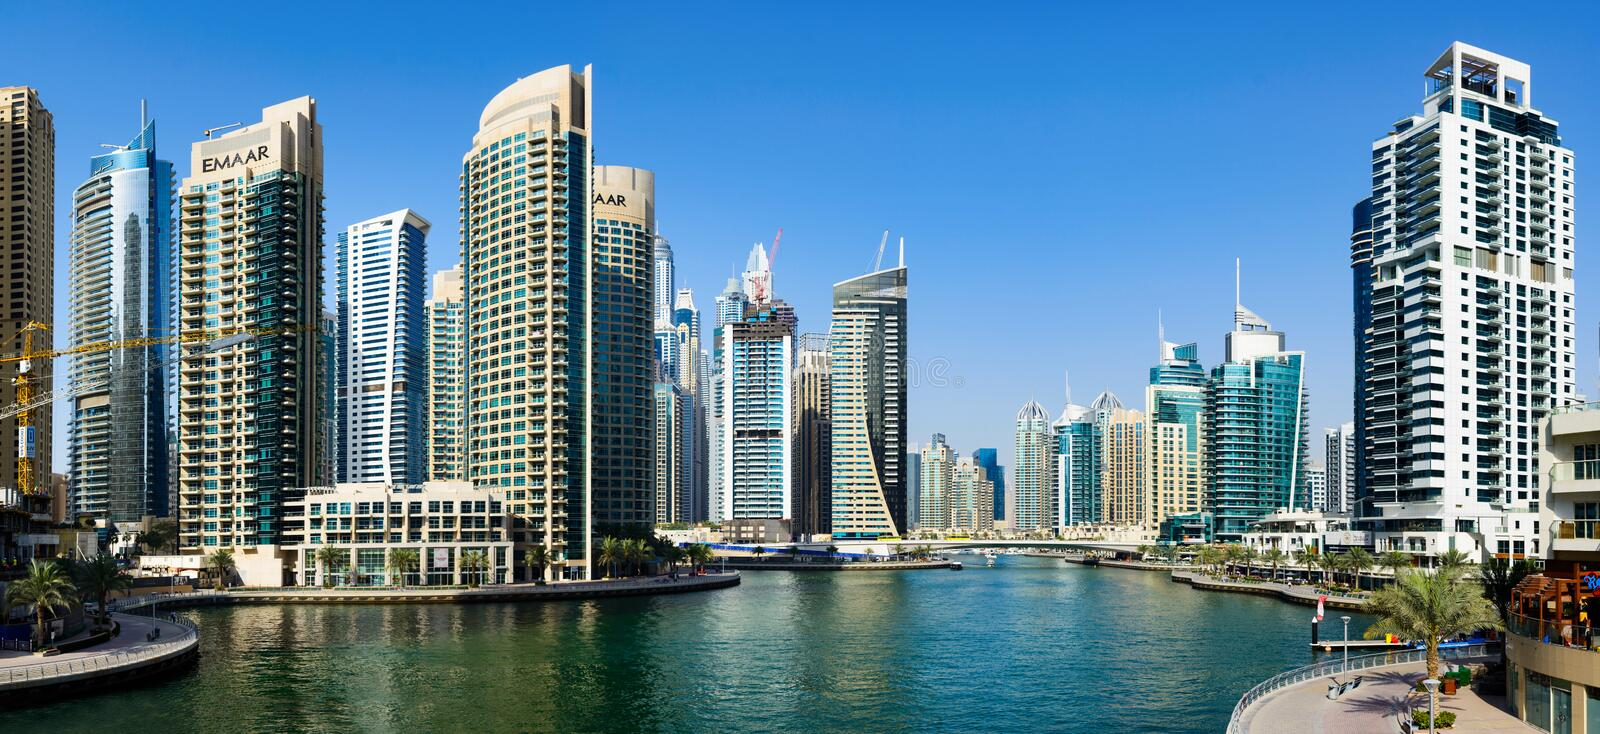 Dubai, United Arab Emirates - March 8, 2018: Dubai marina panoramic day time view with modern skyscrapers and calm water royalty free stock photography